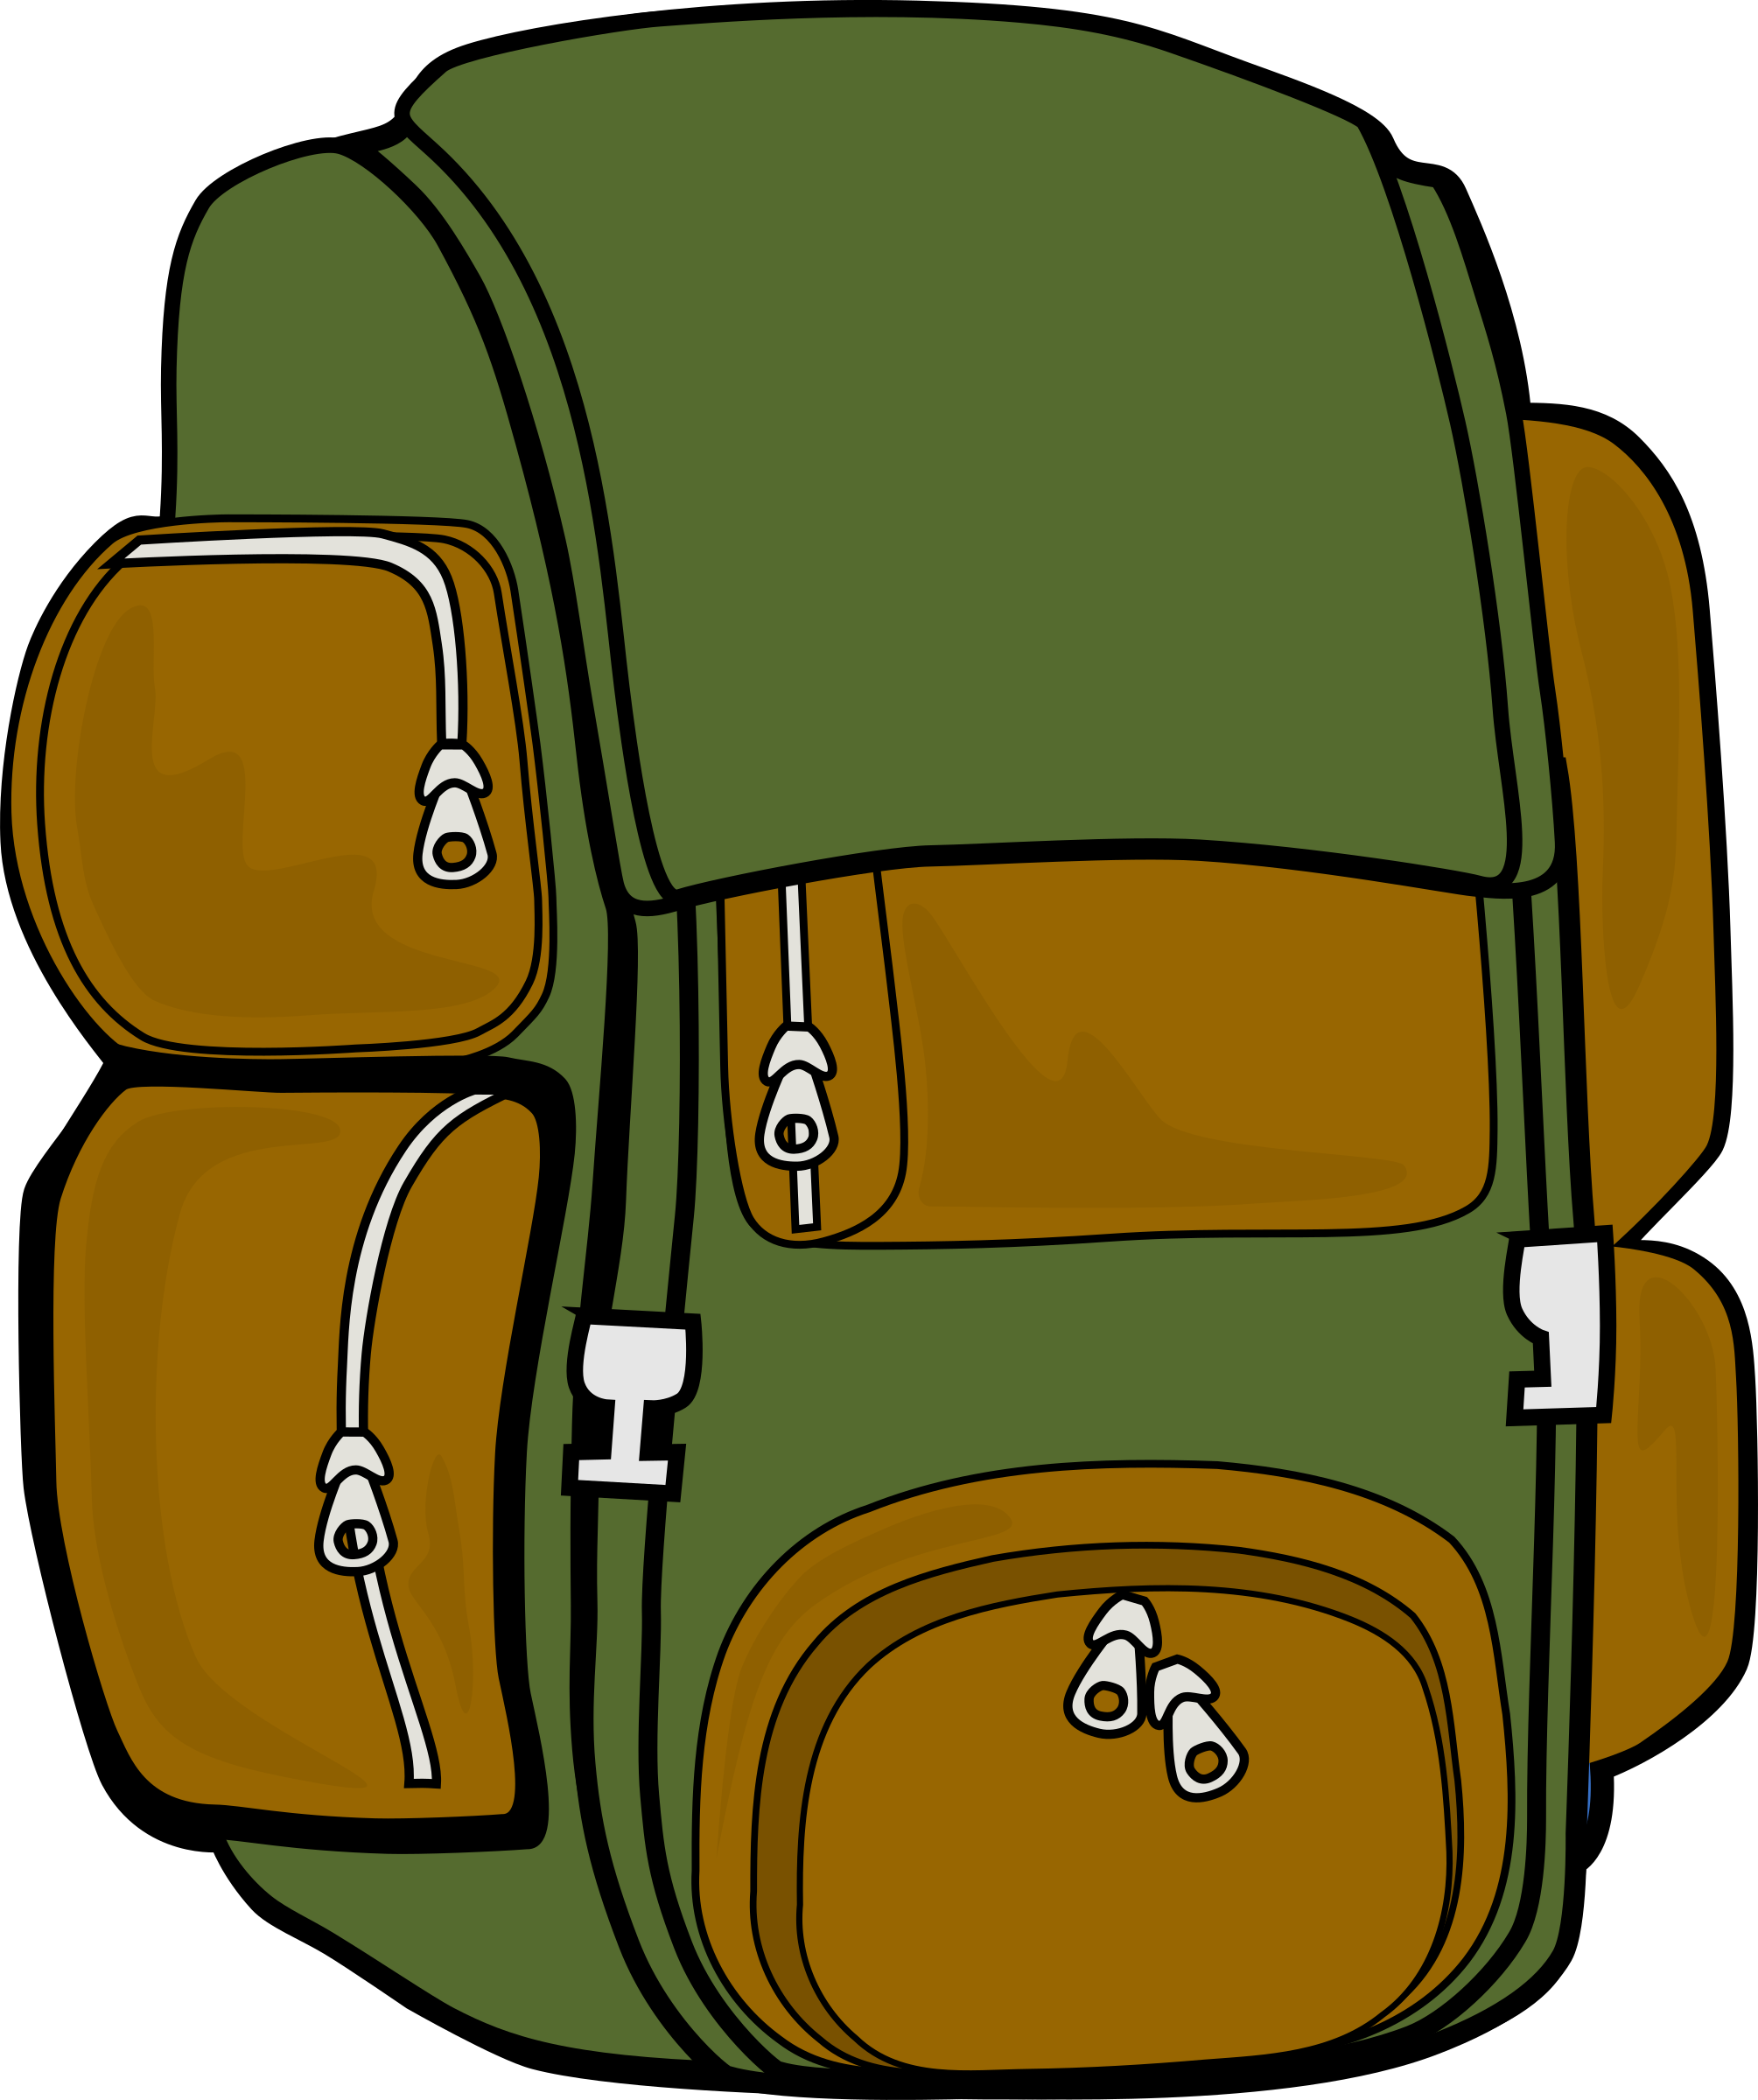 Backpack clipart animation, Backpack animation Transparent.